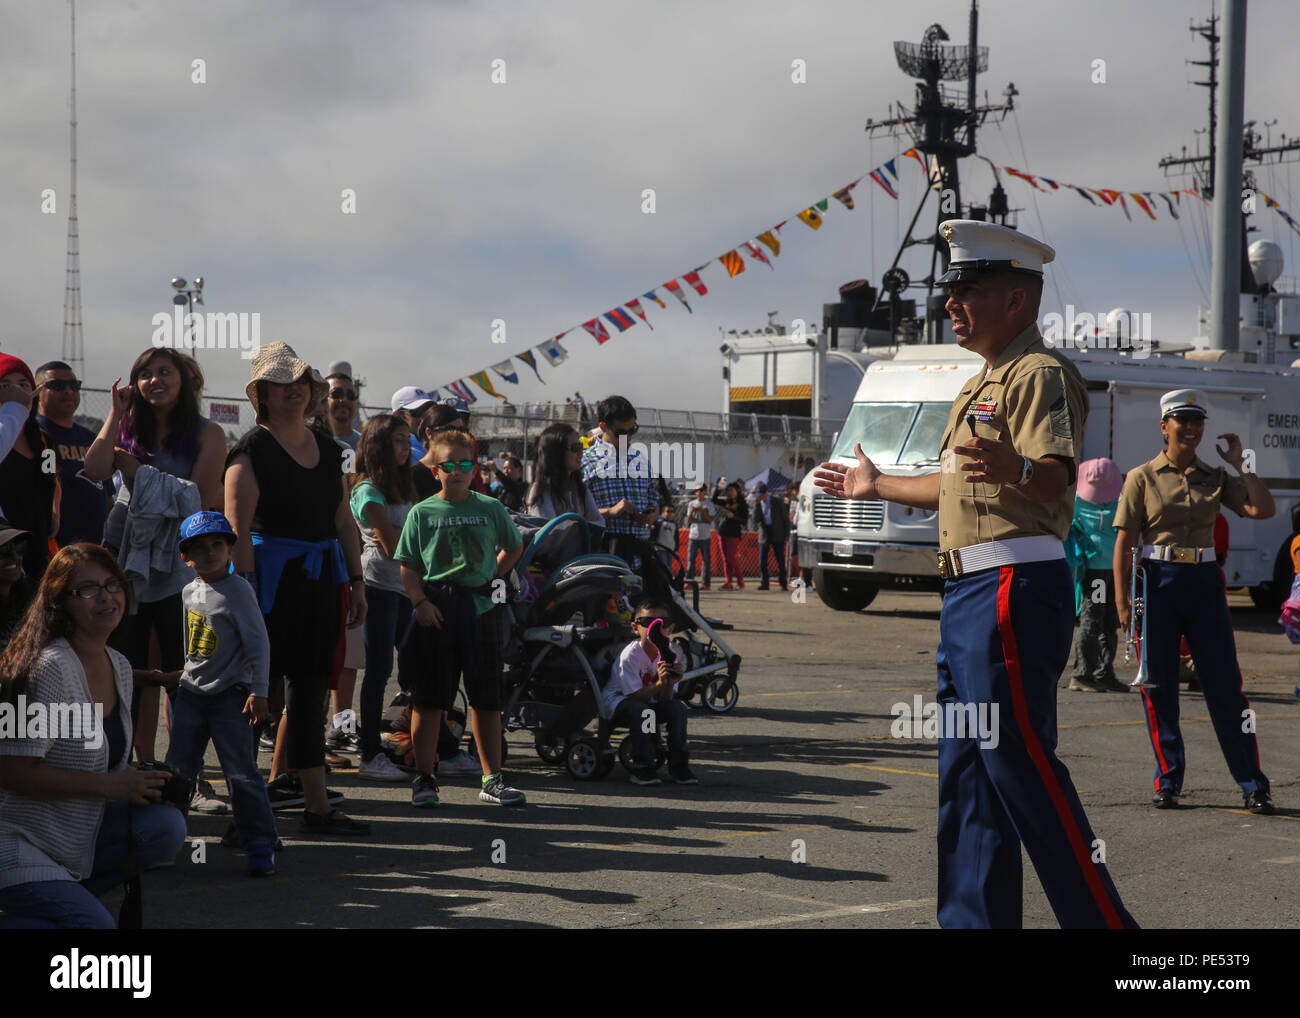 Gunnery Sergeant Tracy Martinez, conductor, 1st Marine Divison Band, welcomes guests to a static ship display on Pier 80 as part of San Francisco Fleet Week 2015, Oct. 10. SFFW 15' is a week-long event that blends a unique training and education program, bringing together key civilian emergency responders and Naval crisis-response forces to exchange best practices focused on humanitarian assistance disaster relief with particular emphasis on defense support to civil authorities. - Stock Image